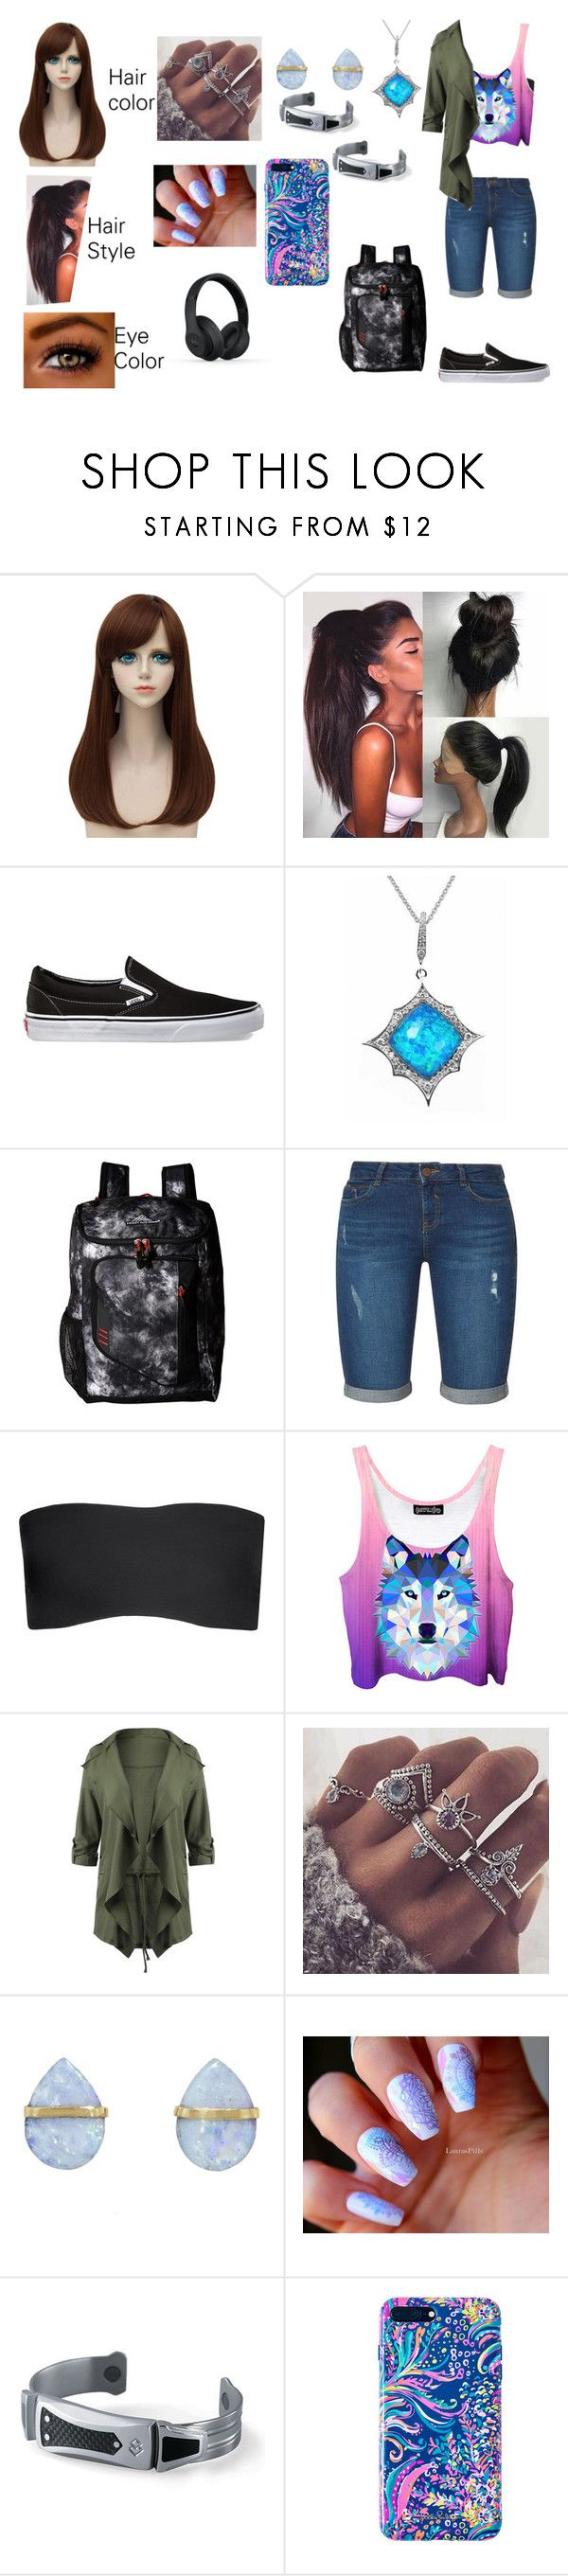 """""""Kimberly (outfit 1 part 1)"""" by adreianna-arroyo on Polyvore featuring Vans, Stephen Webster, High Sierra, Dorothy Perkins, Commando, Melissa Joy Manning, Marvel, Lilly Pulitzer and Beats by Dr. Dre"""